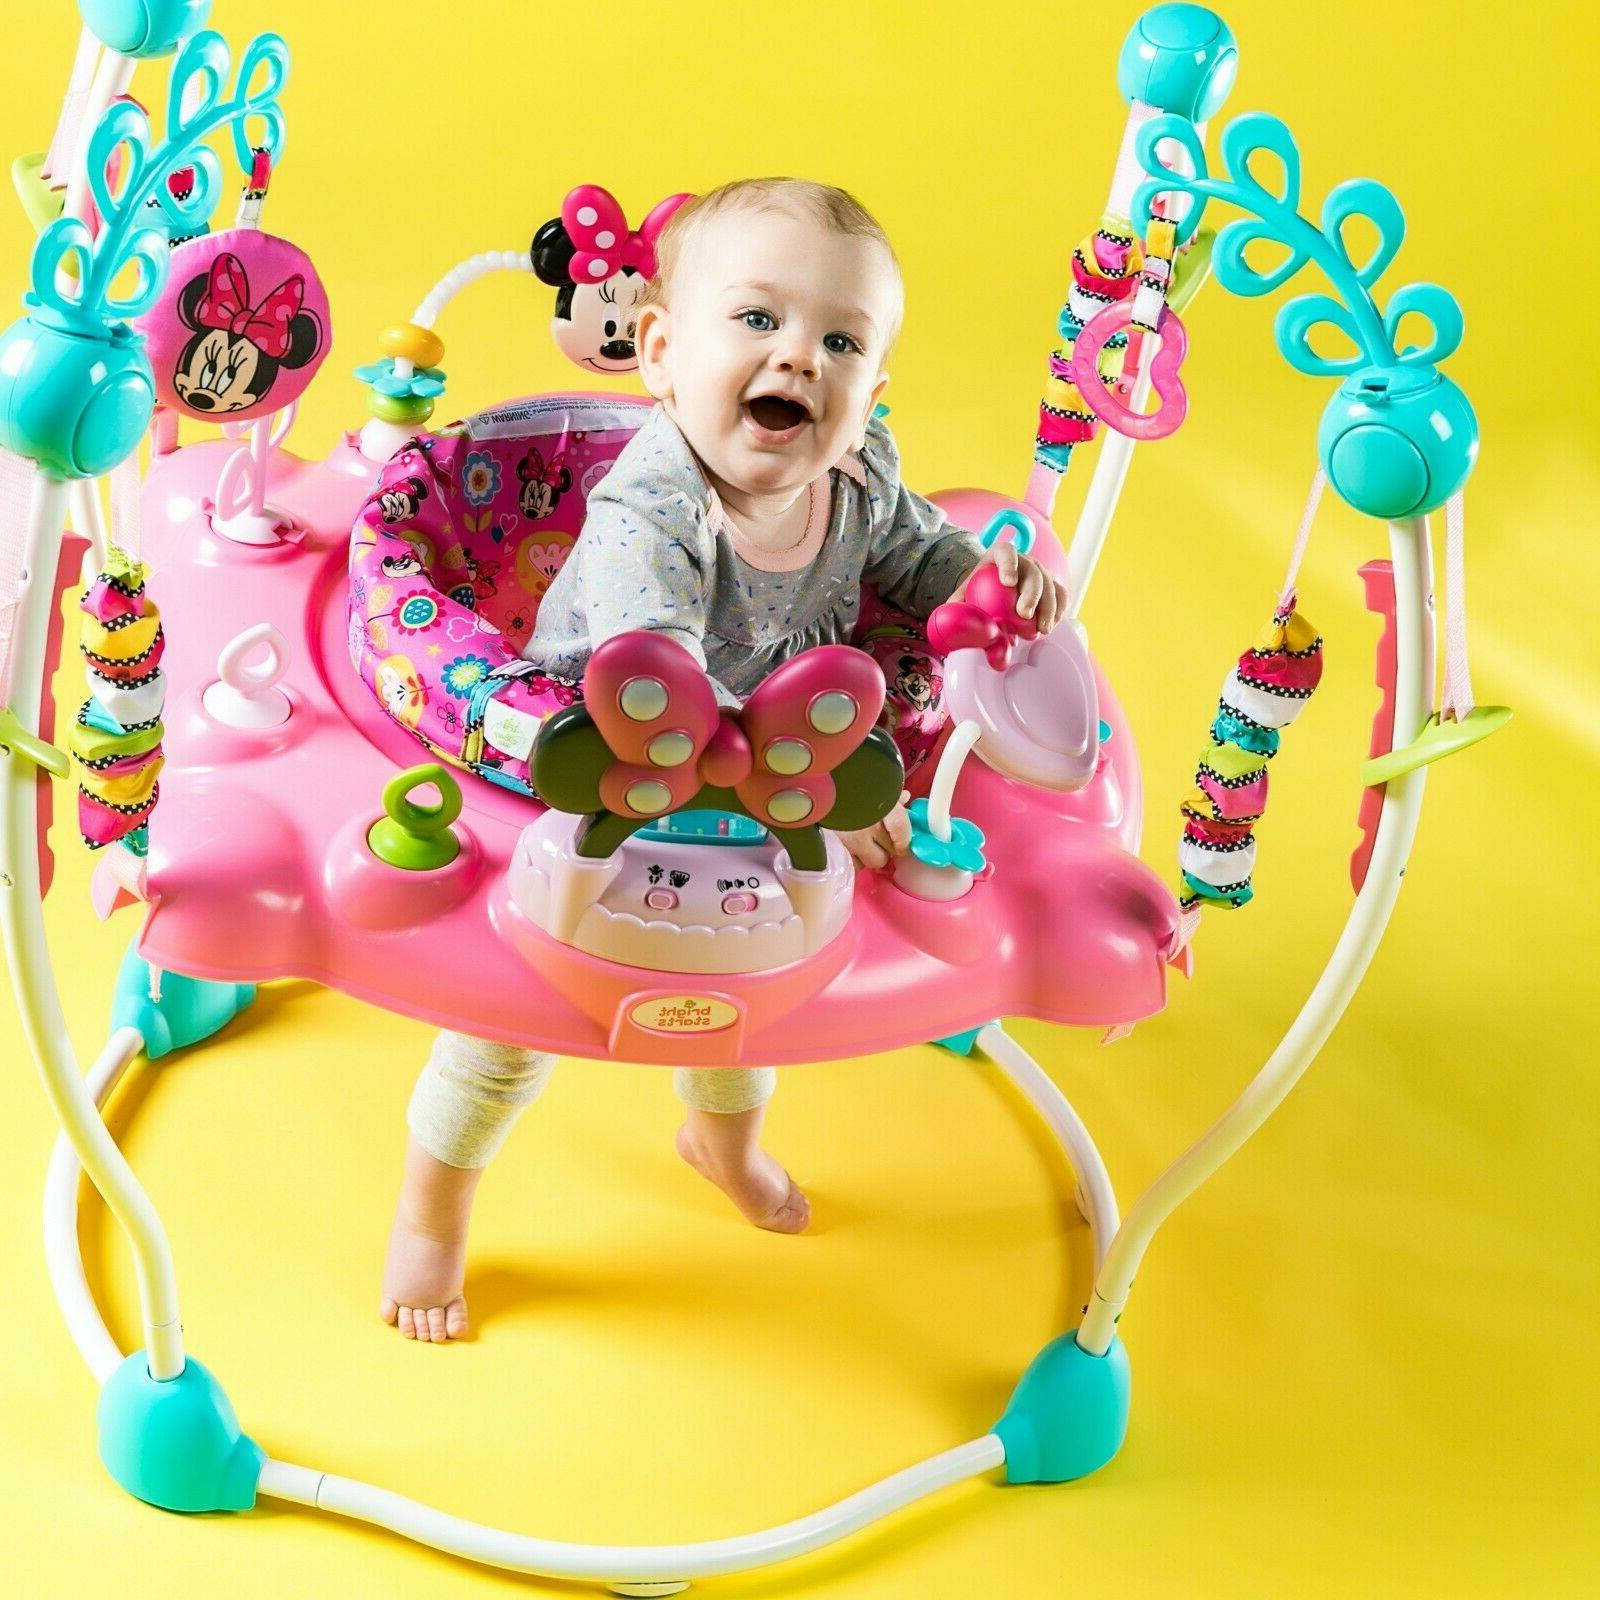 Baby Jumper Bouncer Seat Learning Toy Music Sounds Gift